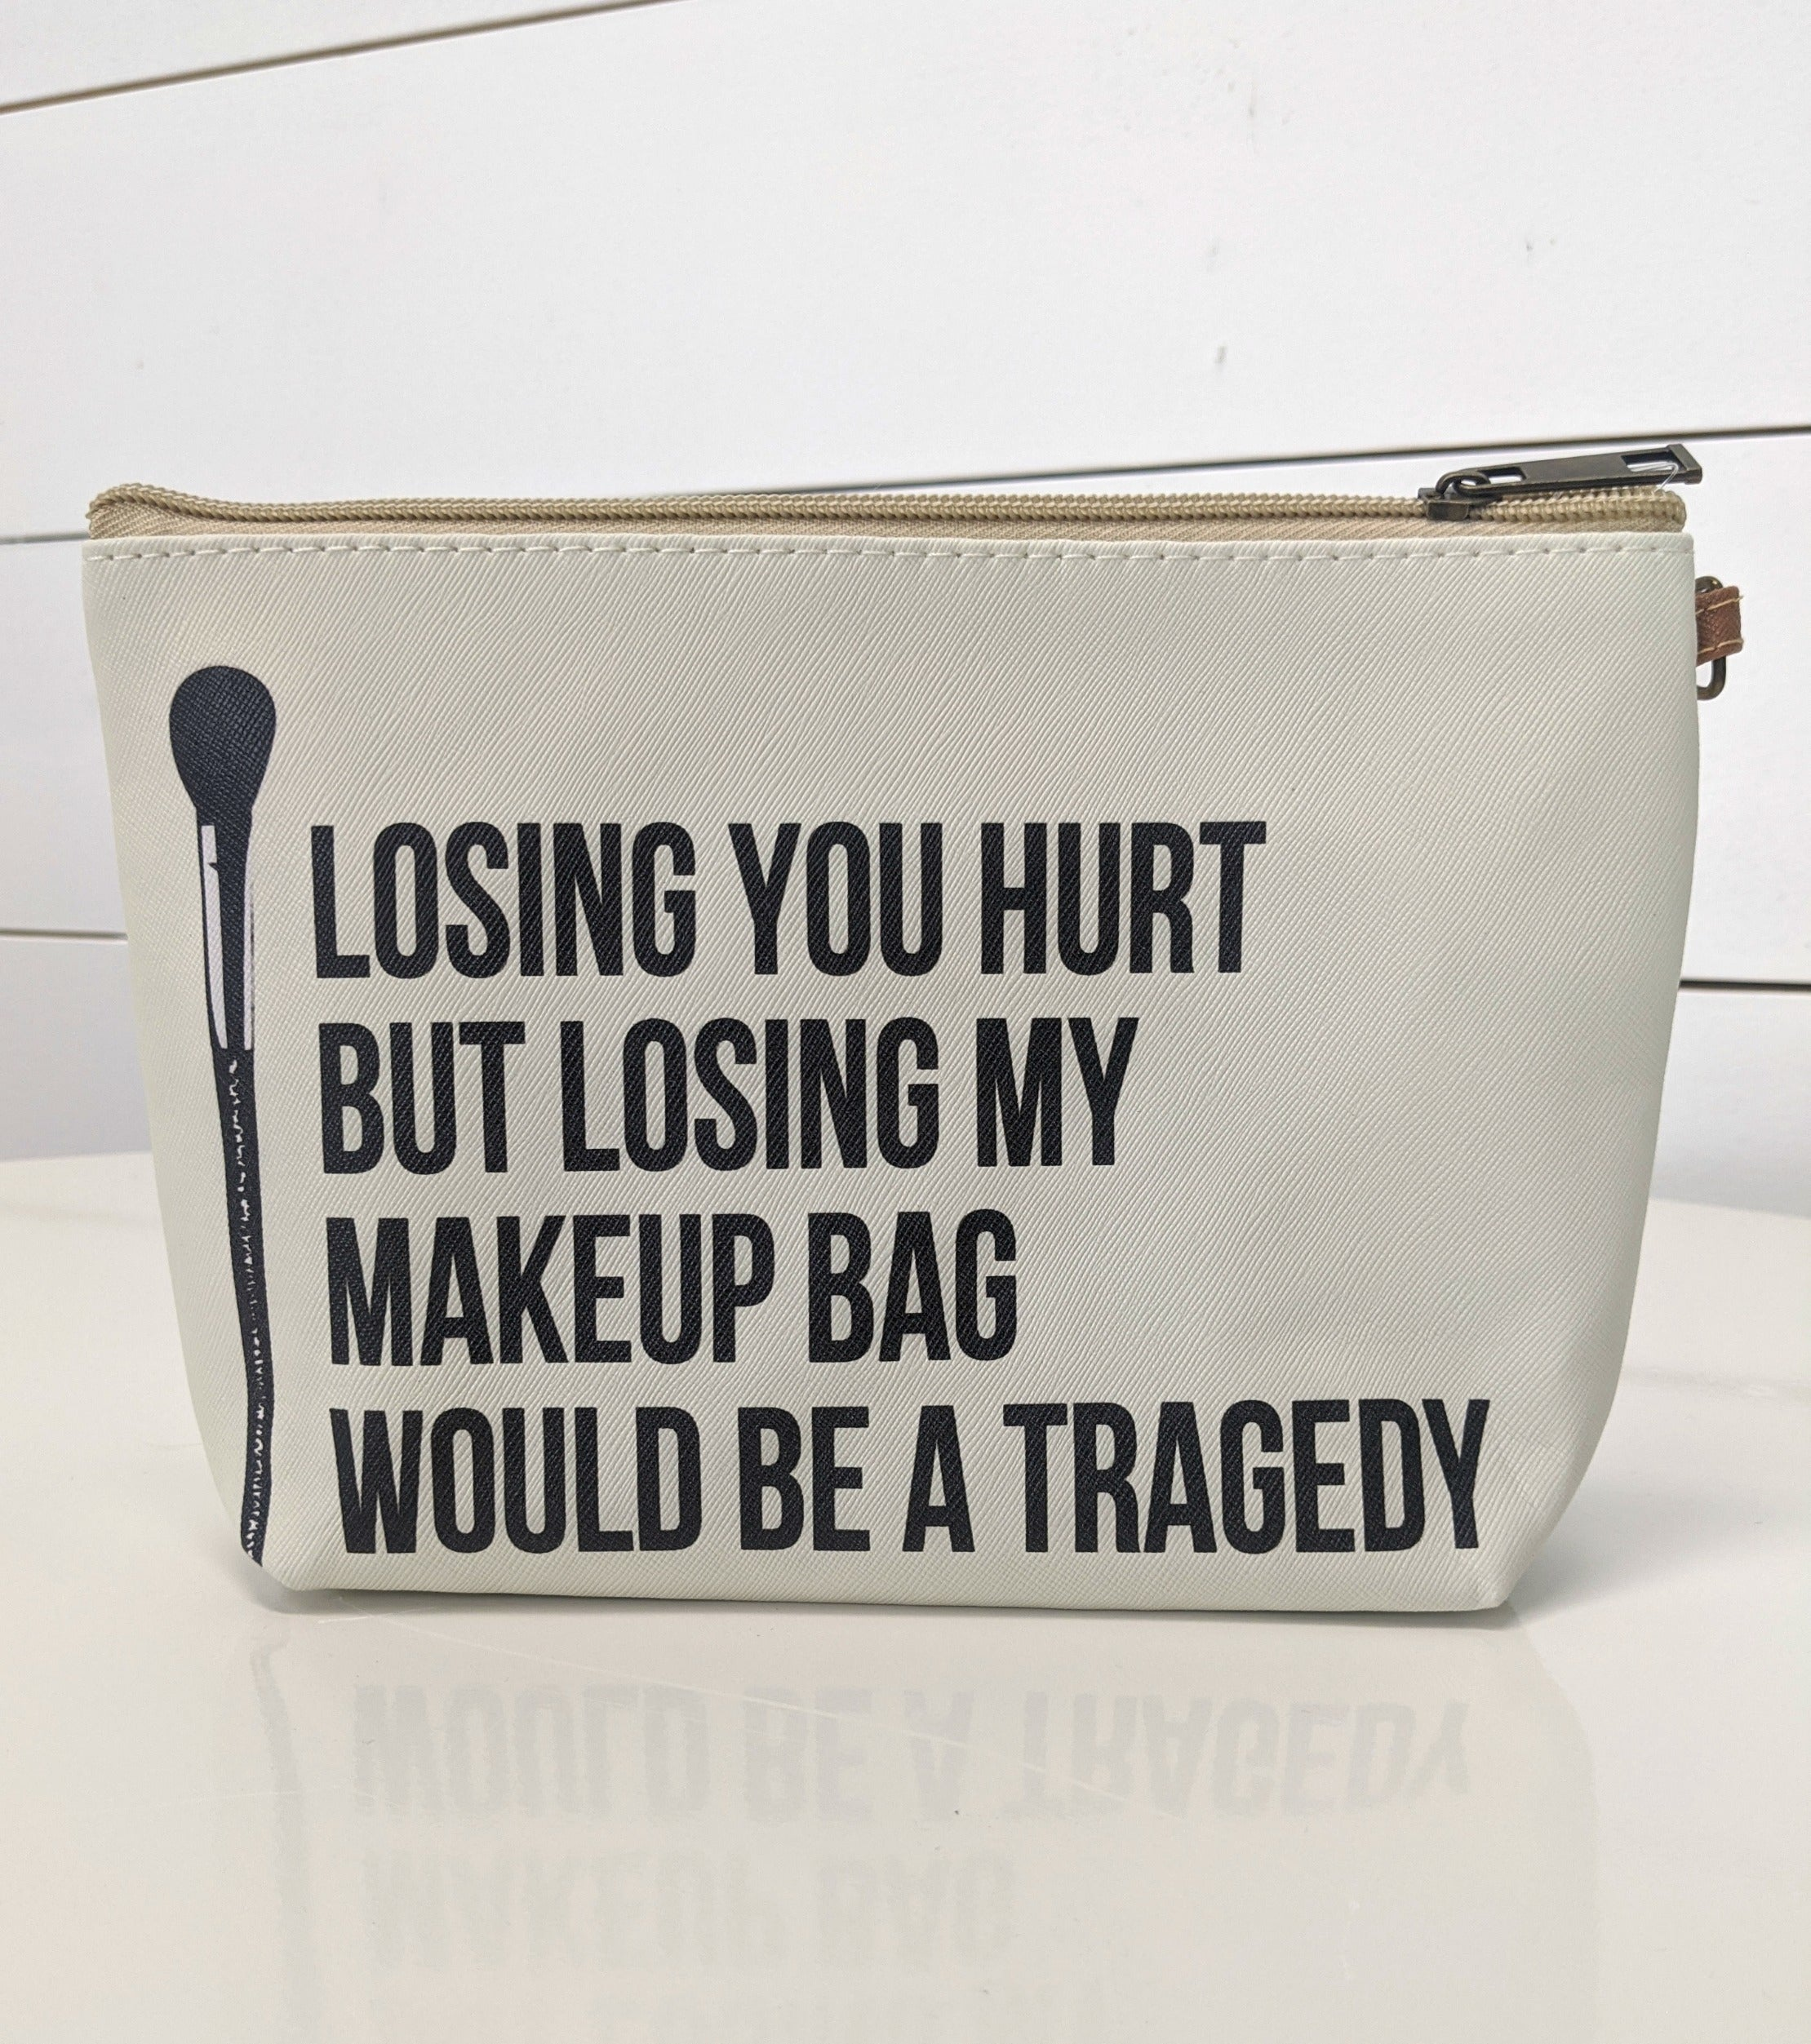 Makeup Bag Tragedy